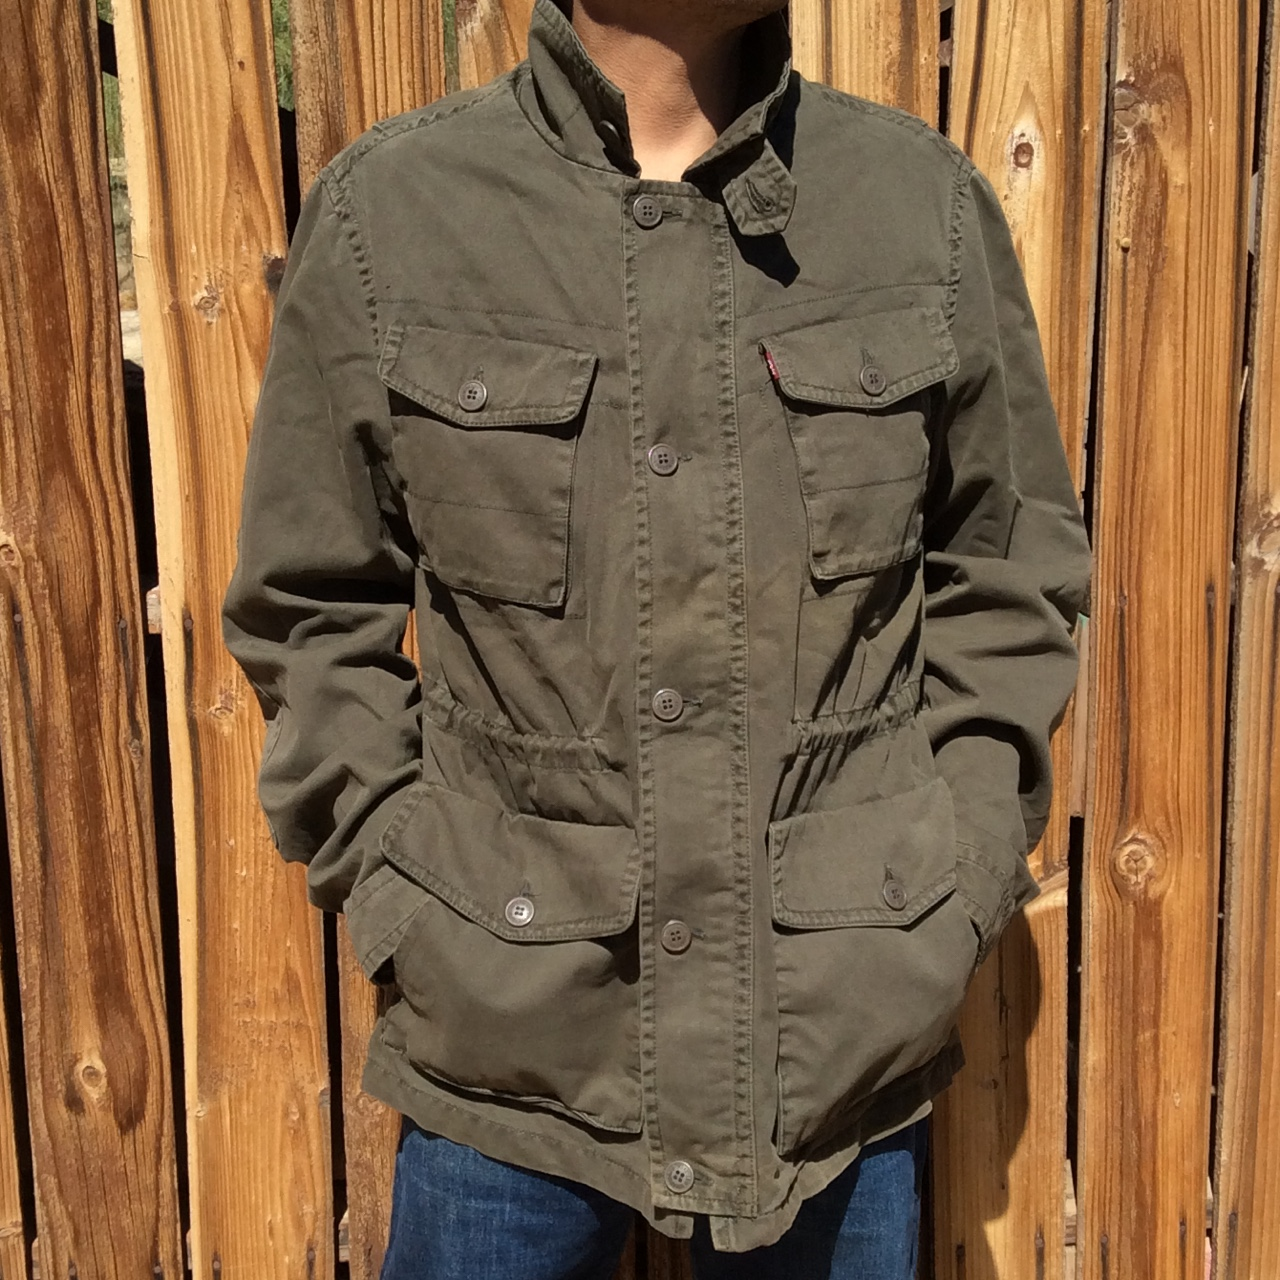 Levis Military Style Army Green Field Jacket Coat Depop